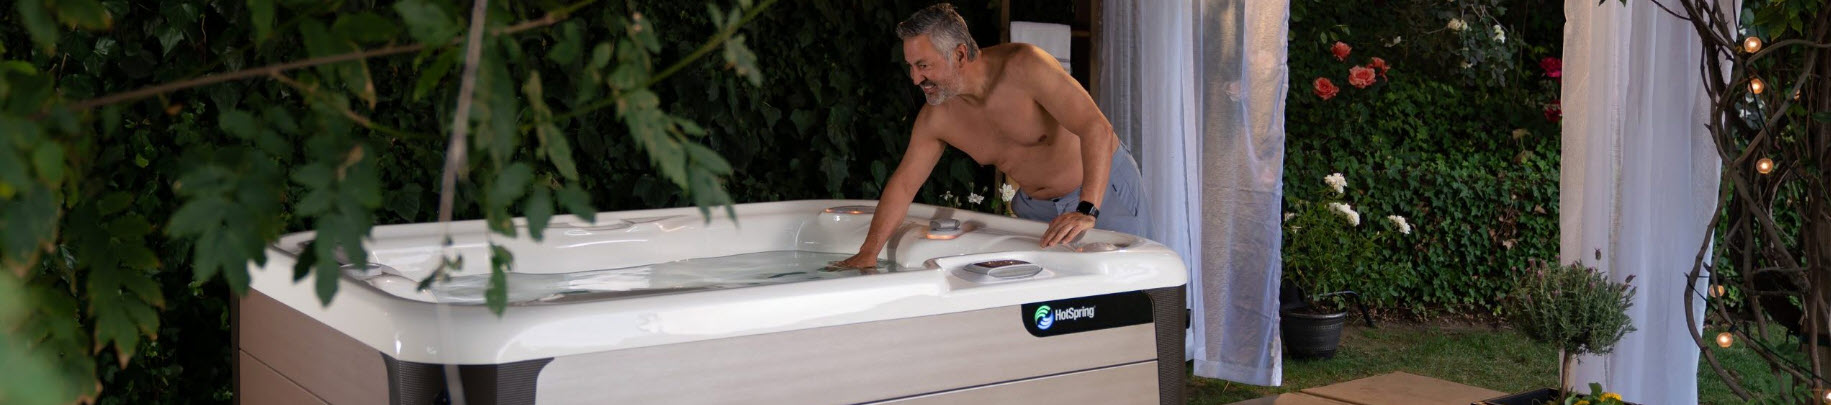 Hot Tub Dealer St. Louis Serving Florissant and Webster Groves, MO., Shares How a Hot Tub Will Help Keep New Year's Resolutions